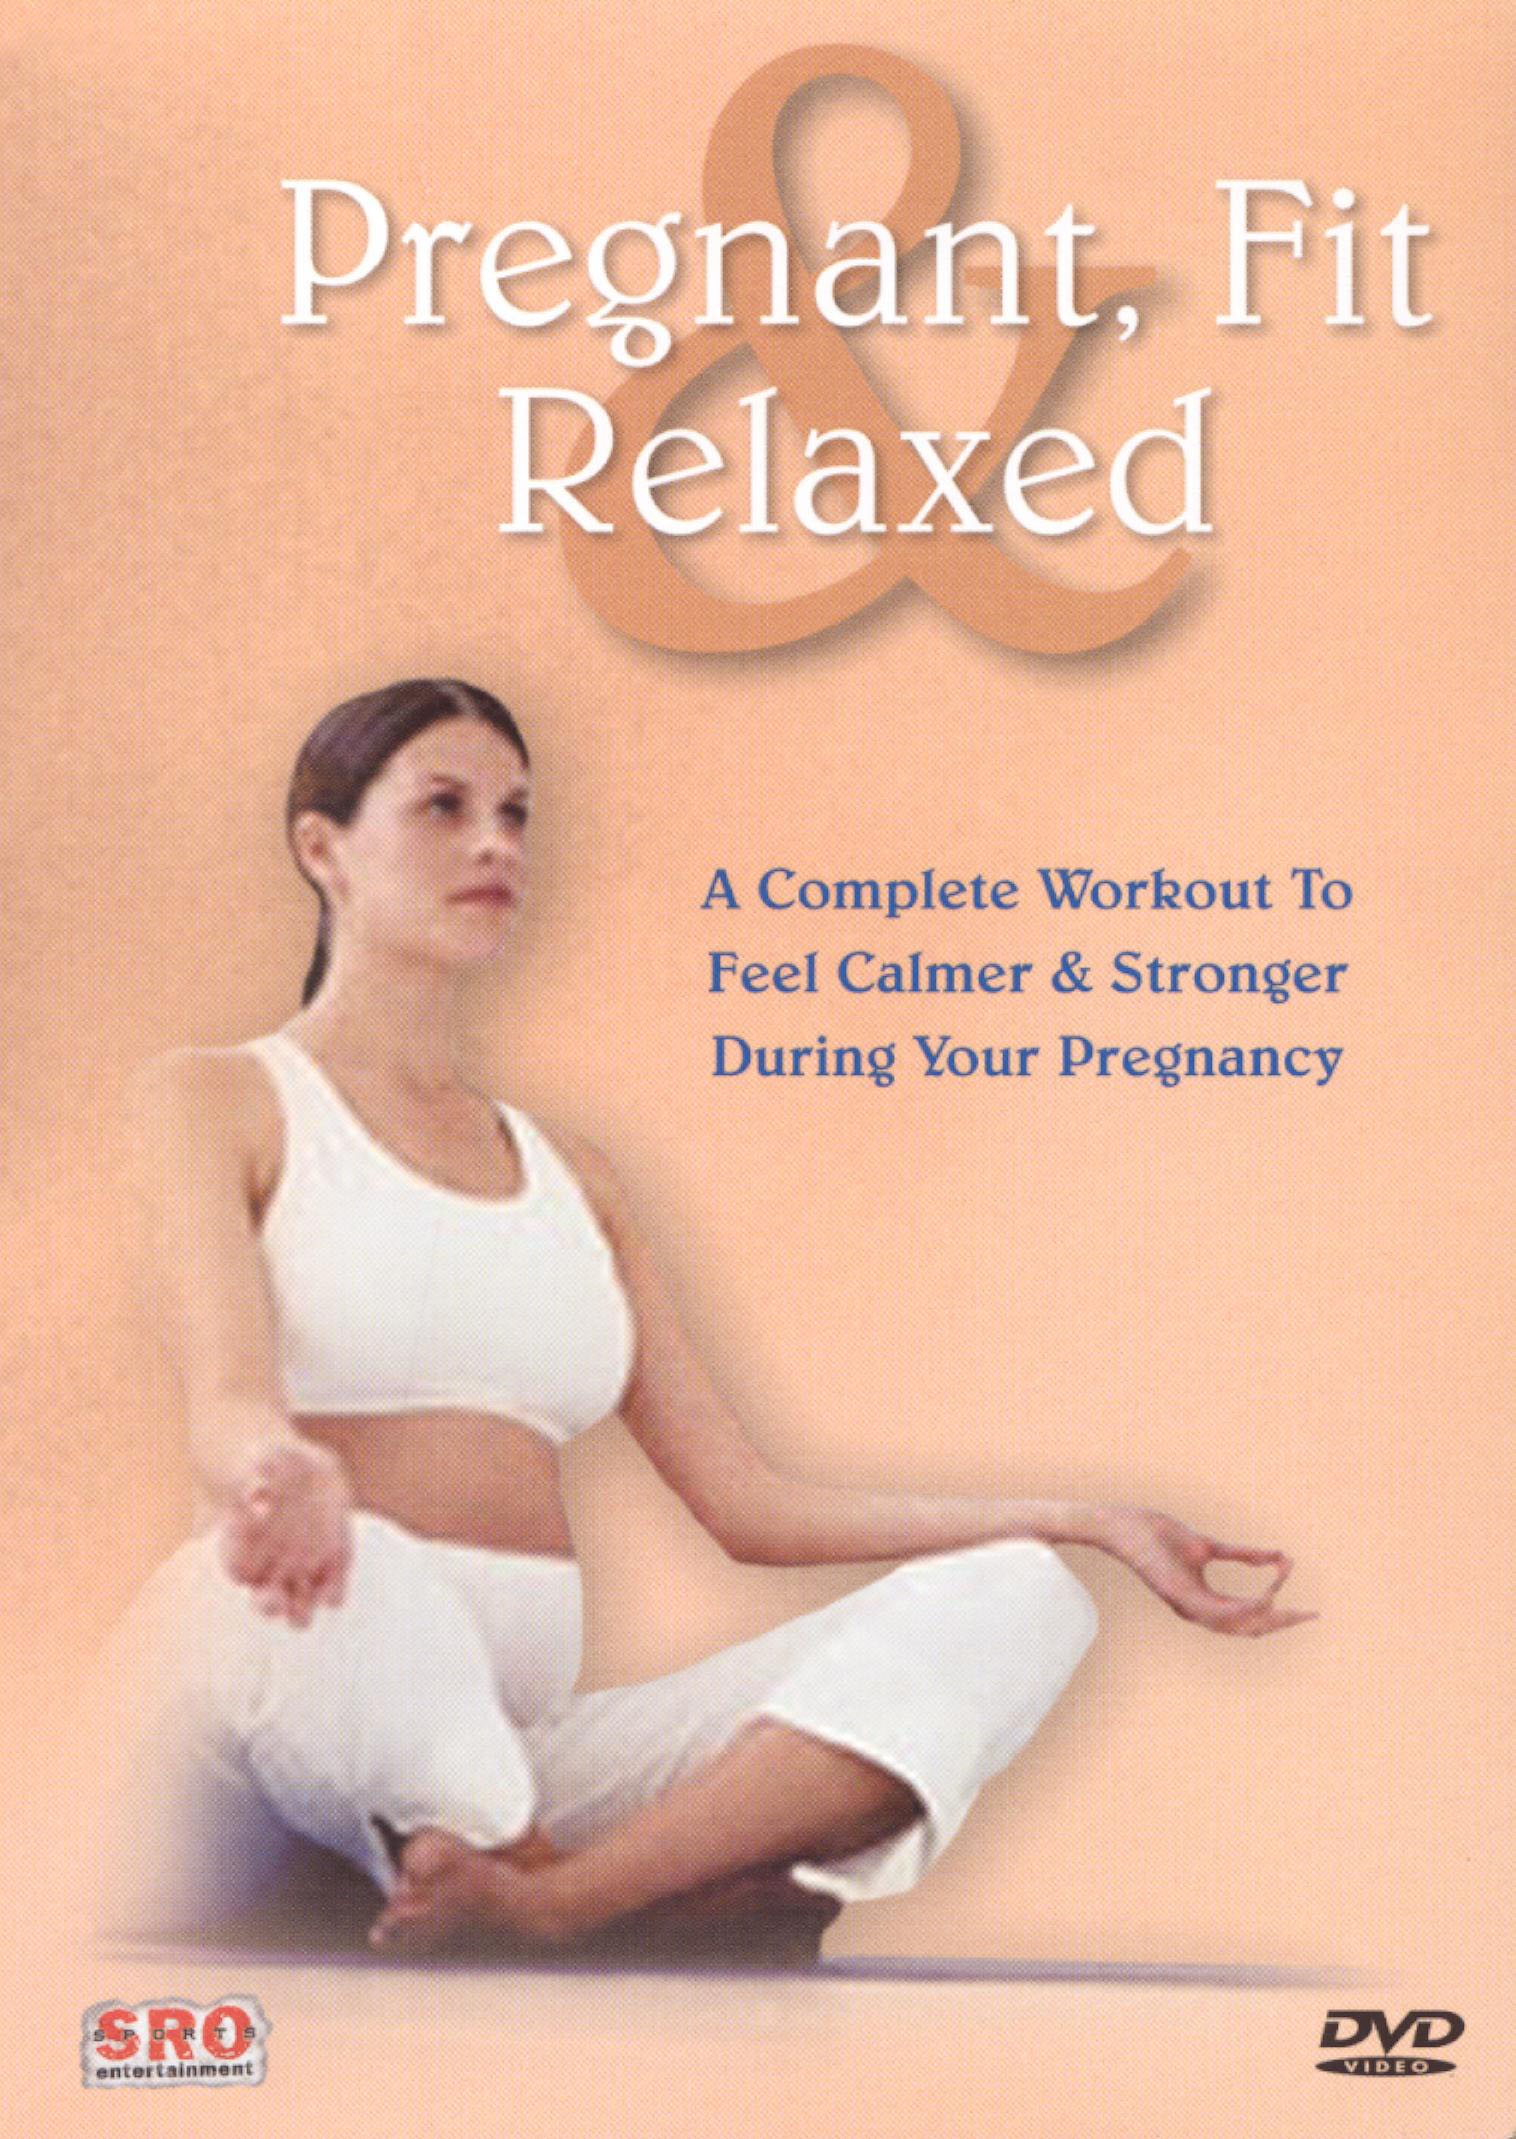 Pregnant, Fit and Relaxed